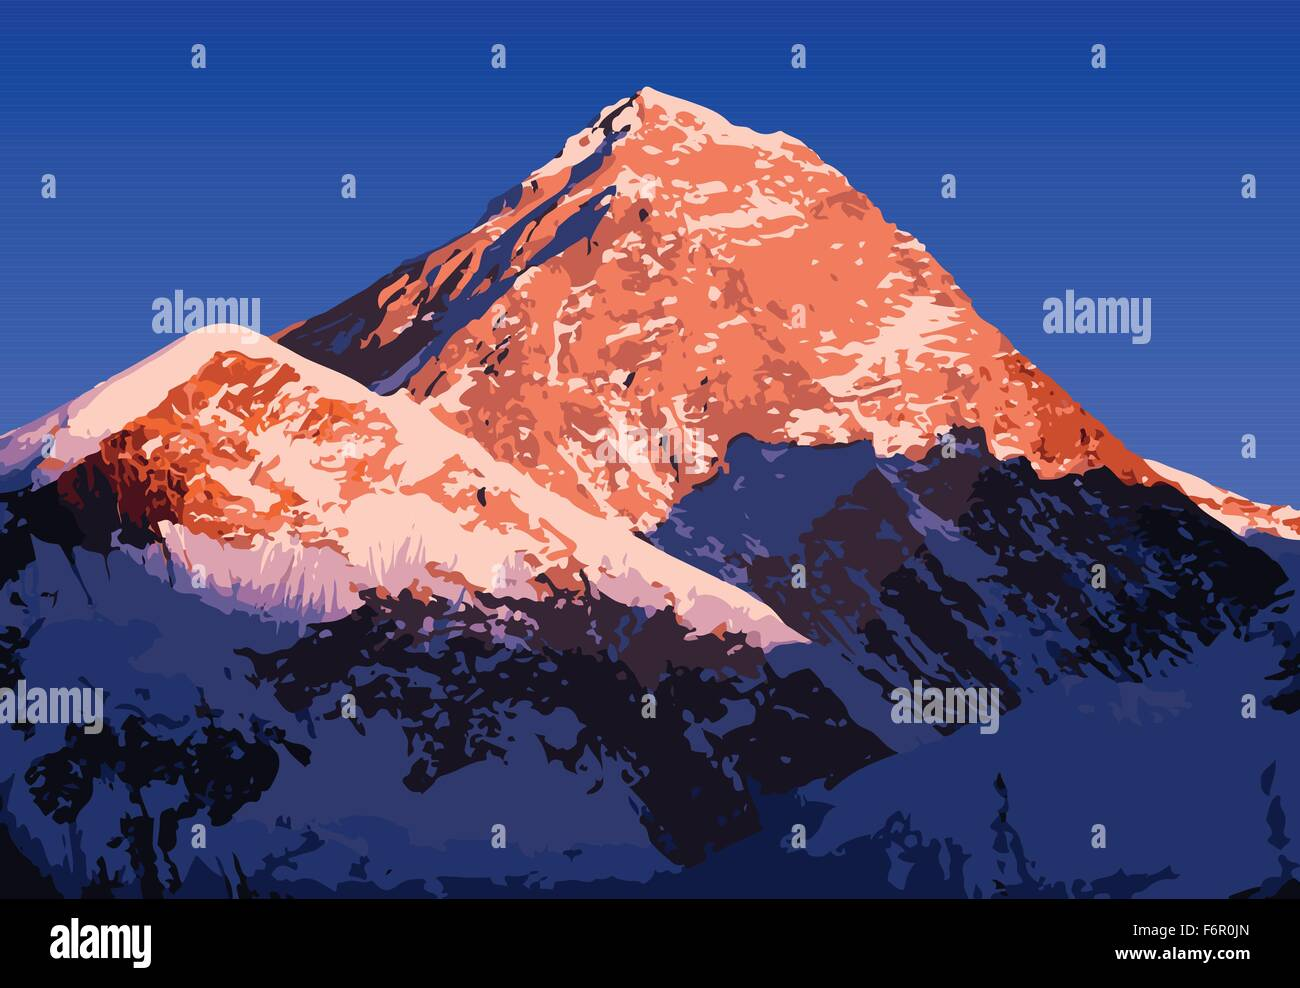 Mount Everest vector, world's highest mountain, in the Himalaya, Nepal - Stock Vector